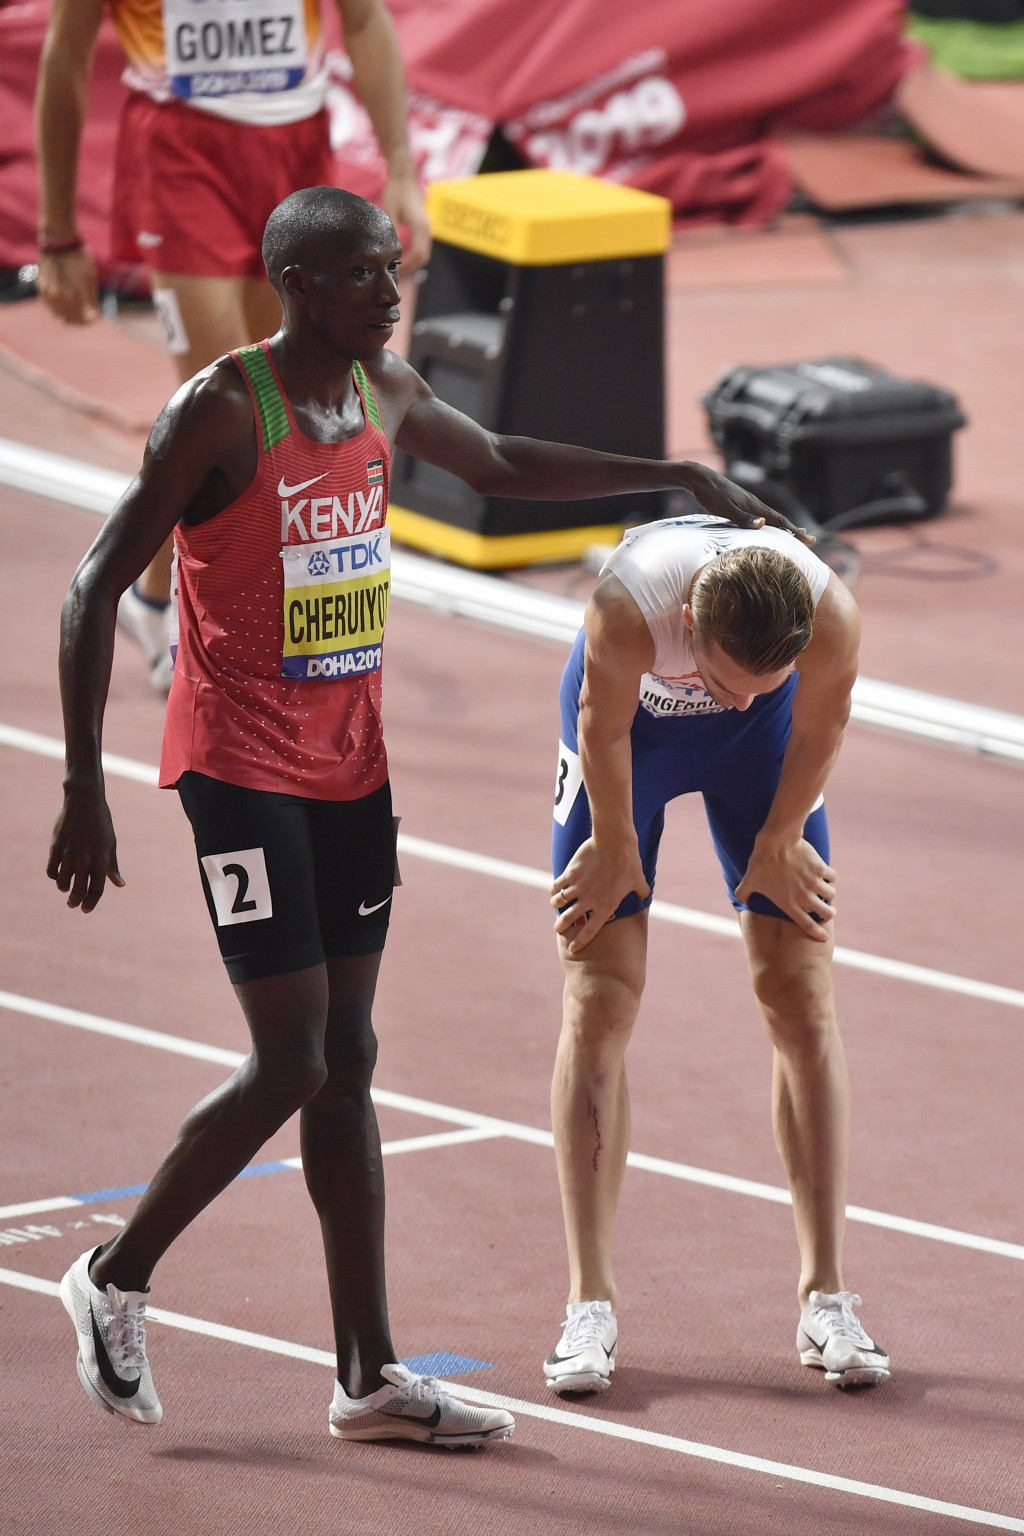 Timothy Cheruiyot, of Kenya, consoles Filip Ingebrigtsen, of Norway, right, after the men's 1500 meter semifinal at the World Athletics Championships